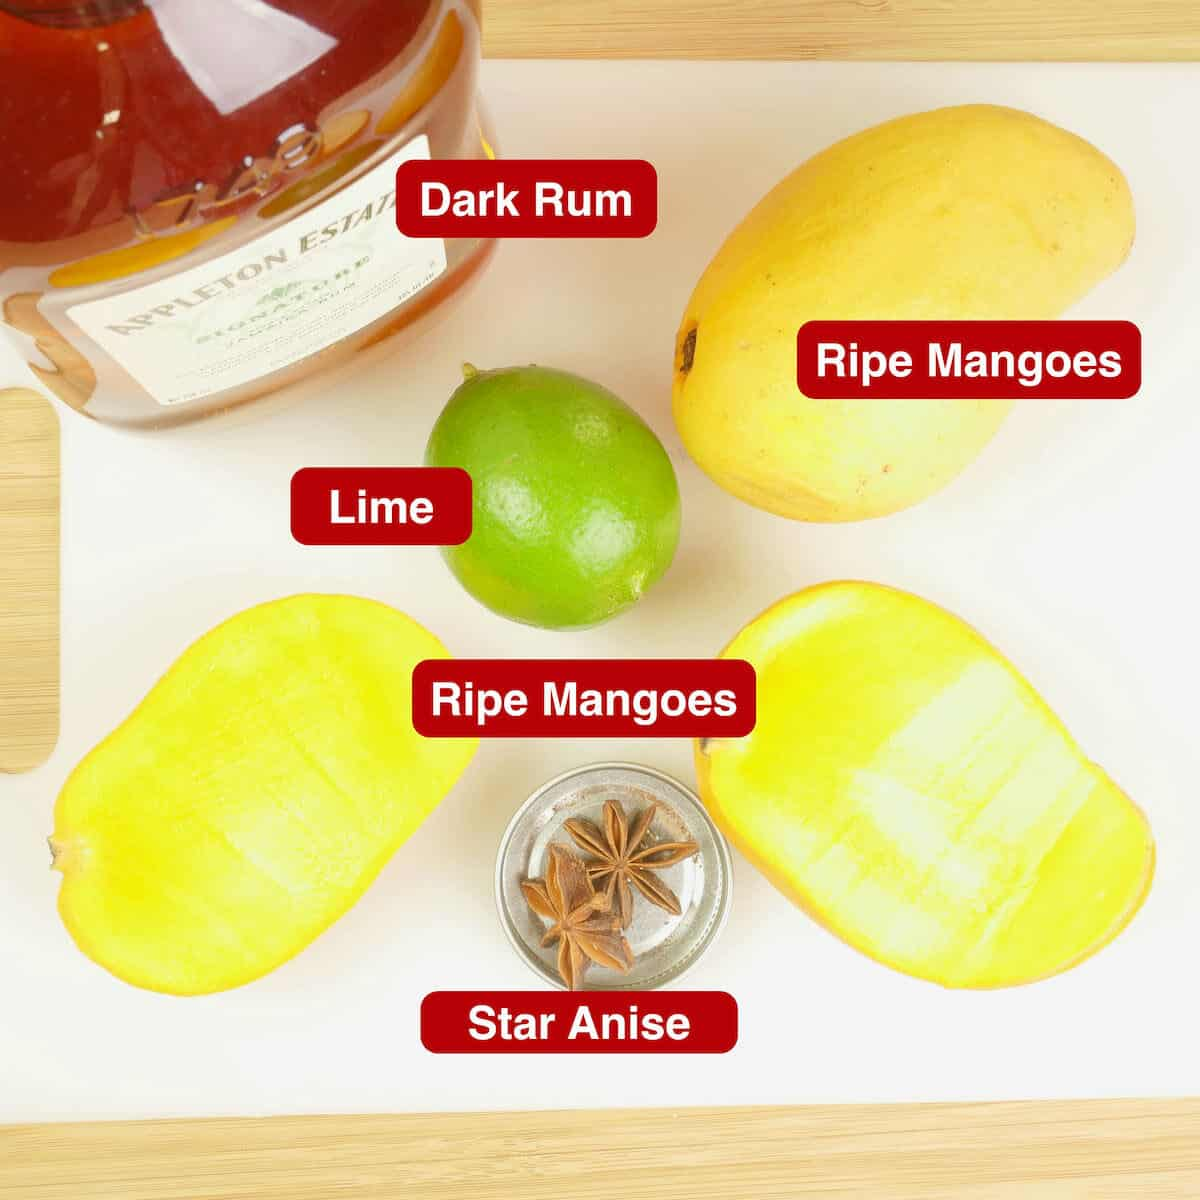 The ingredients for mango liqueur gathered and on a cutting board.